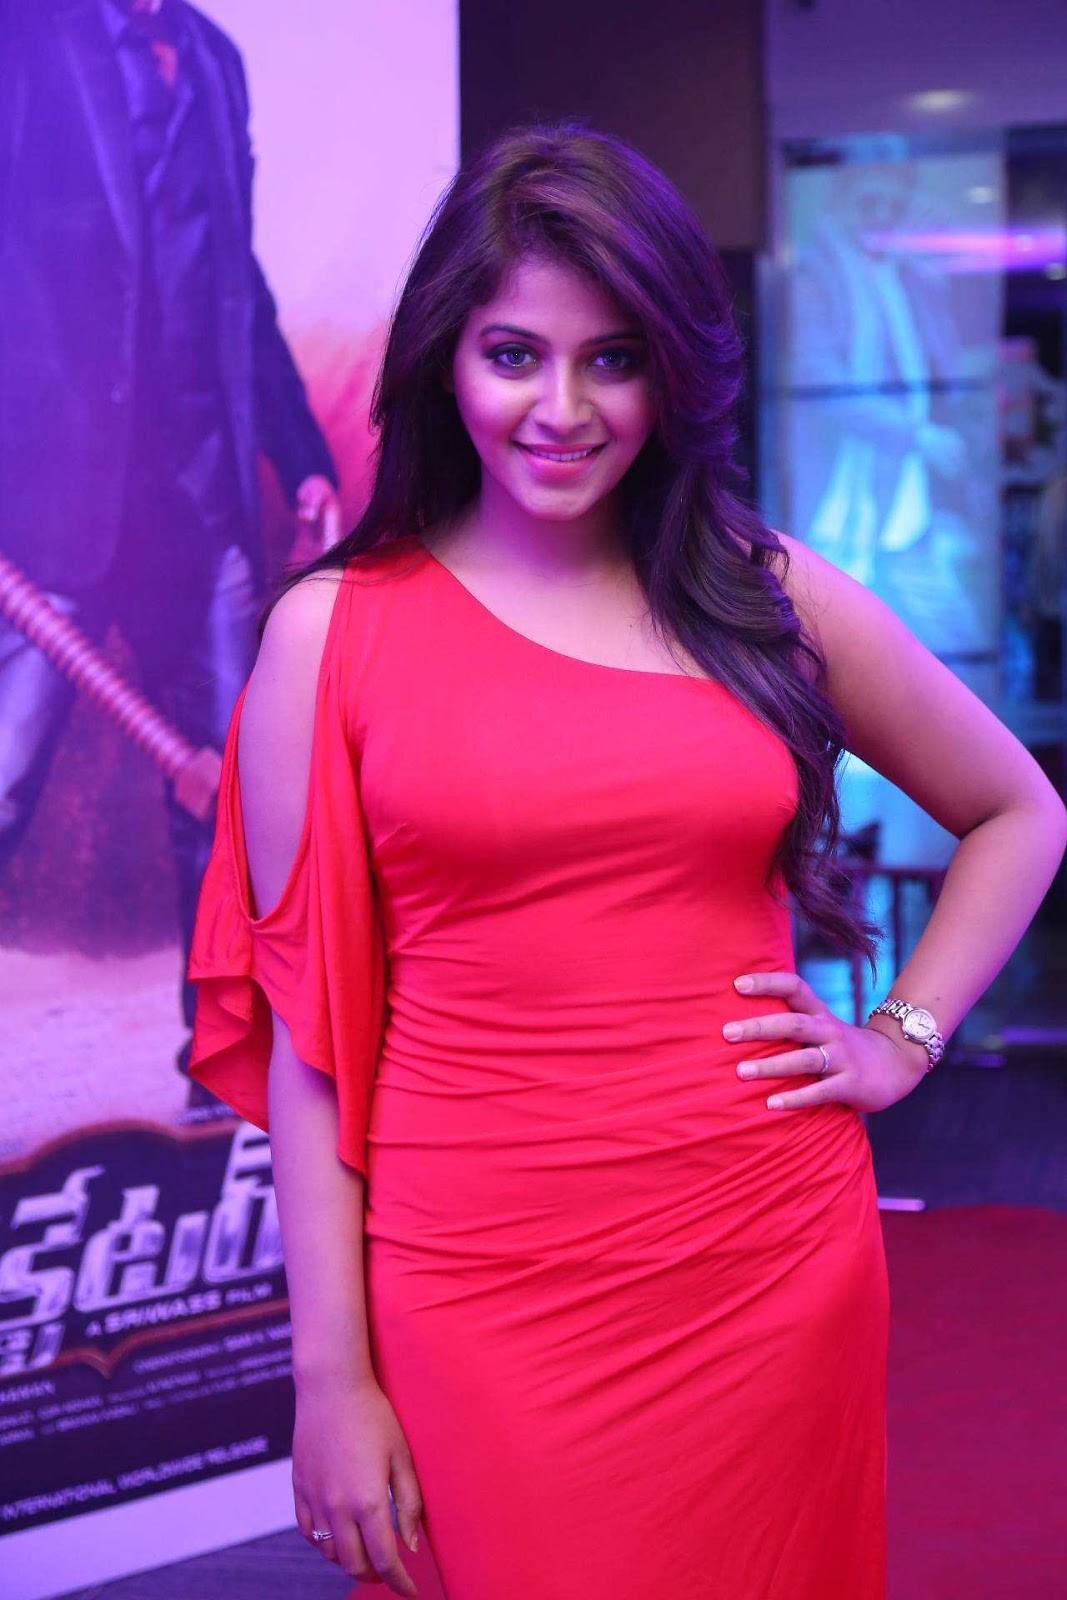 Anjali Tamil Actress Latest Event Hot Photos Gethu Cinema